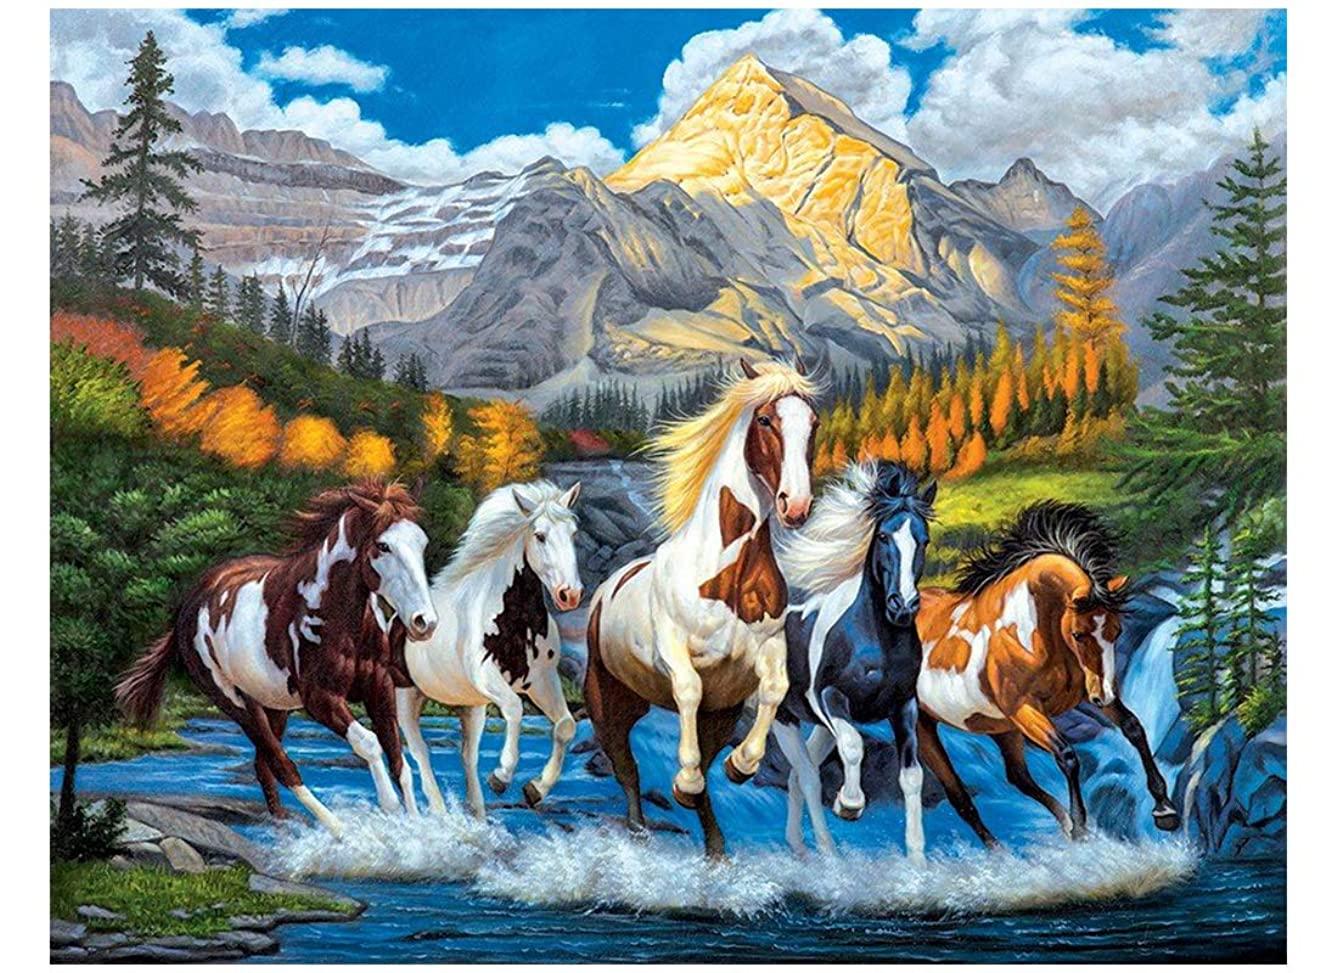 Blxecky 5D Diamond Painting by Number Kits, Crystal Rhinestone Diamond Embroidery Paintings Pictures Arts Craft for Home Wall Decor, Full Drill, ,Horse(30X40CM/12X16inch)